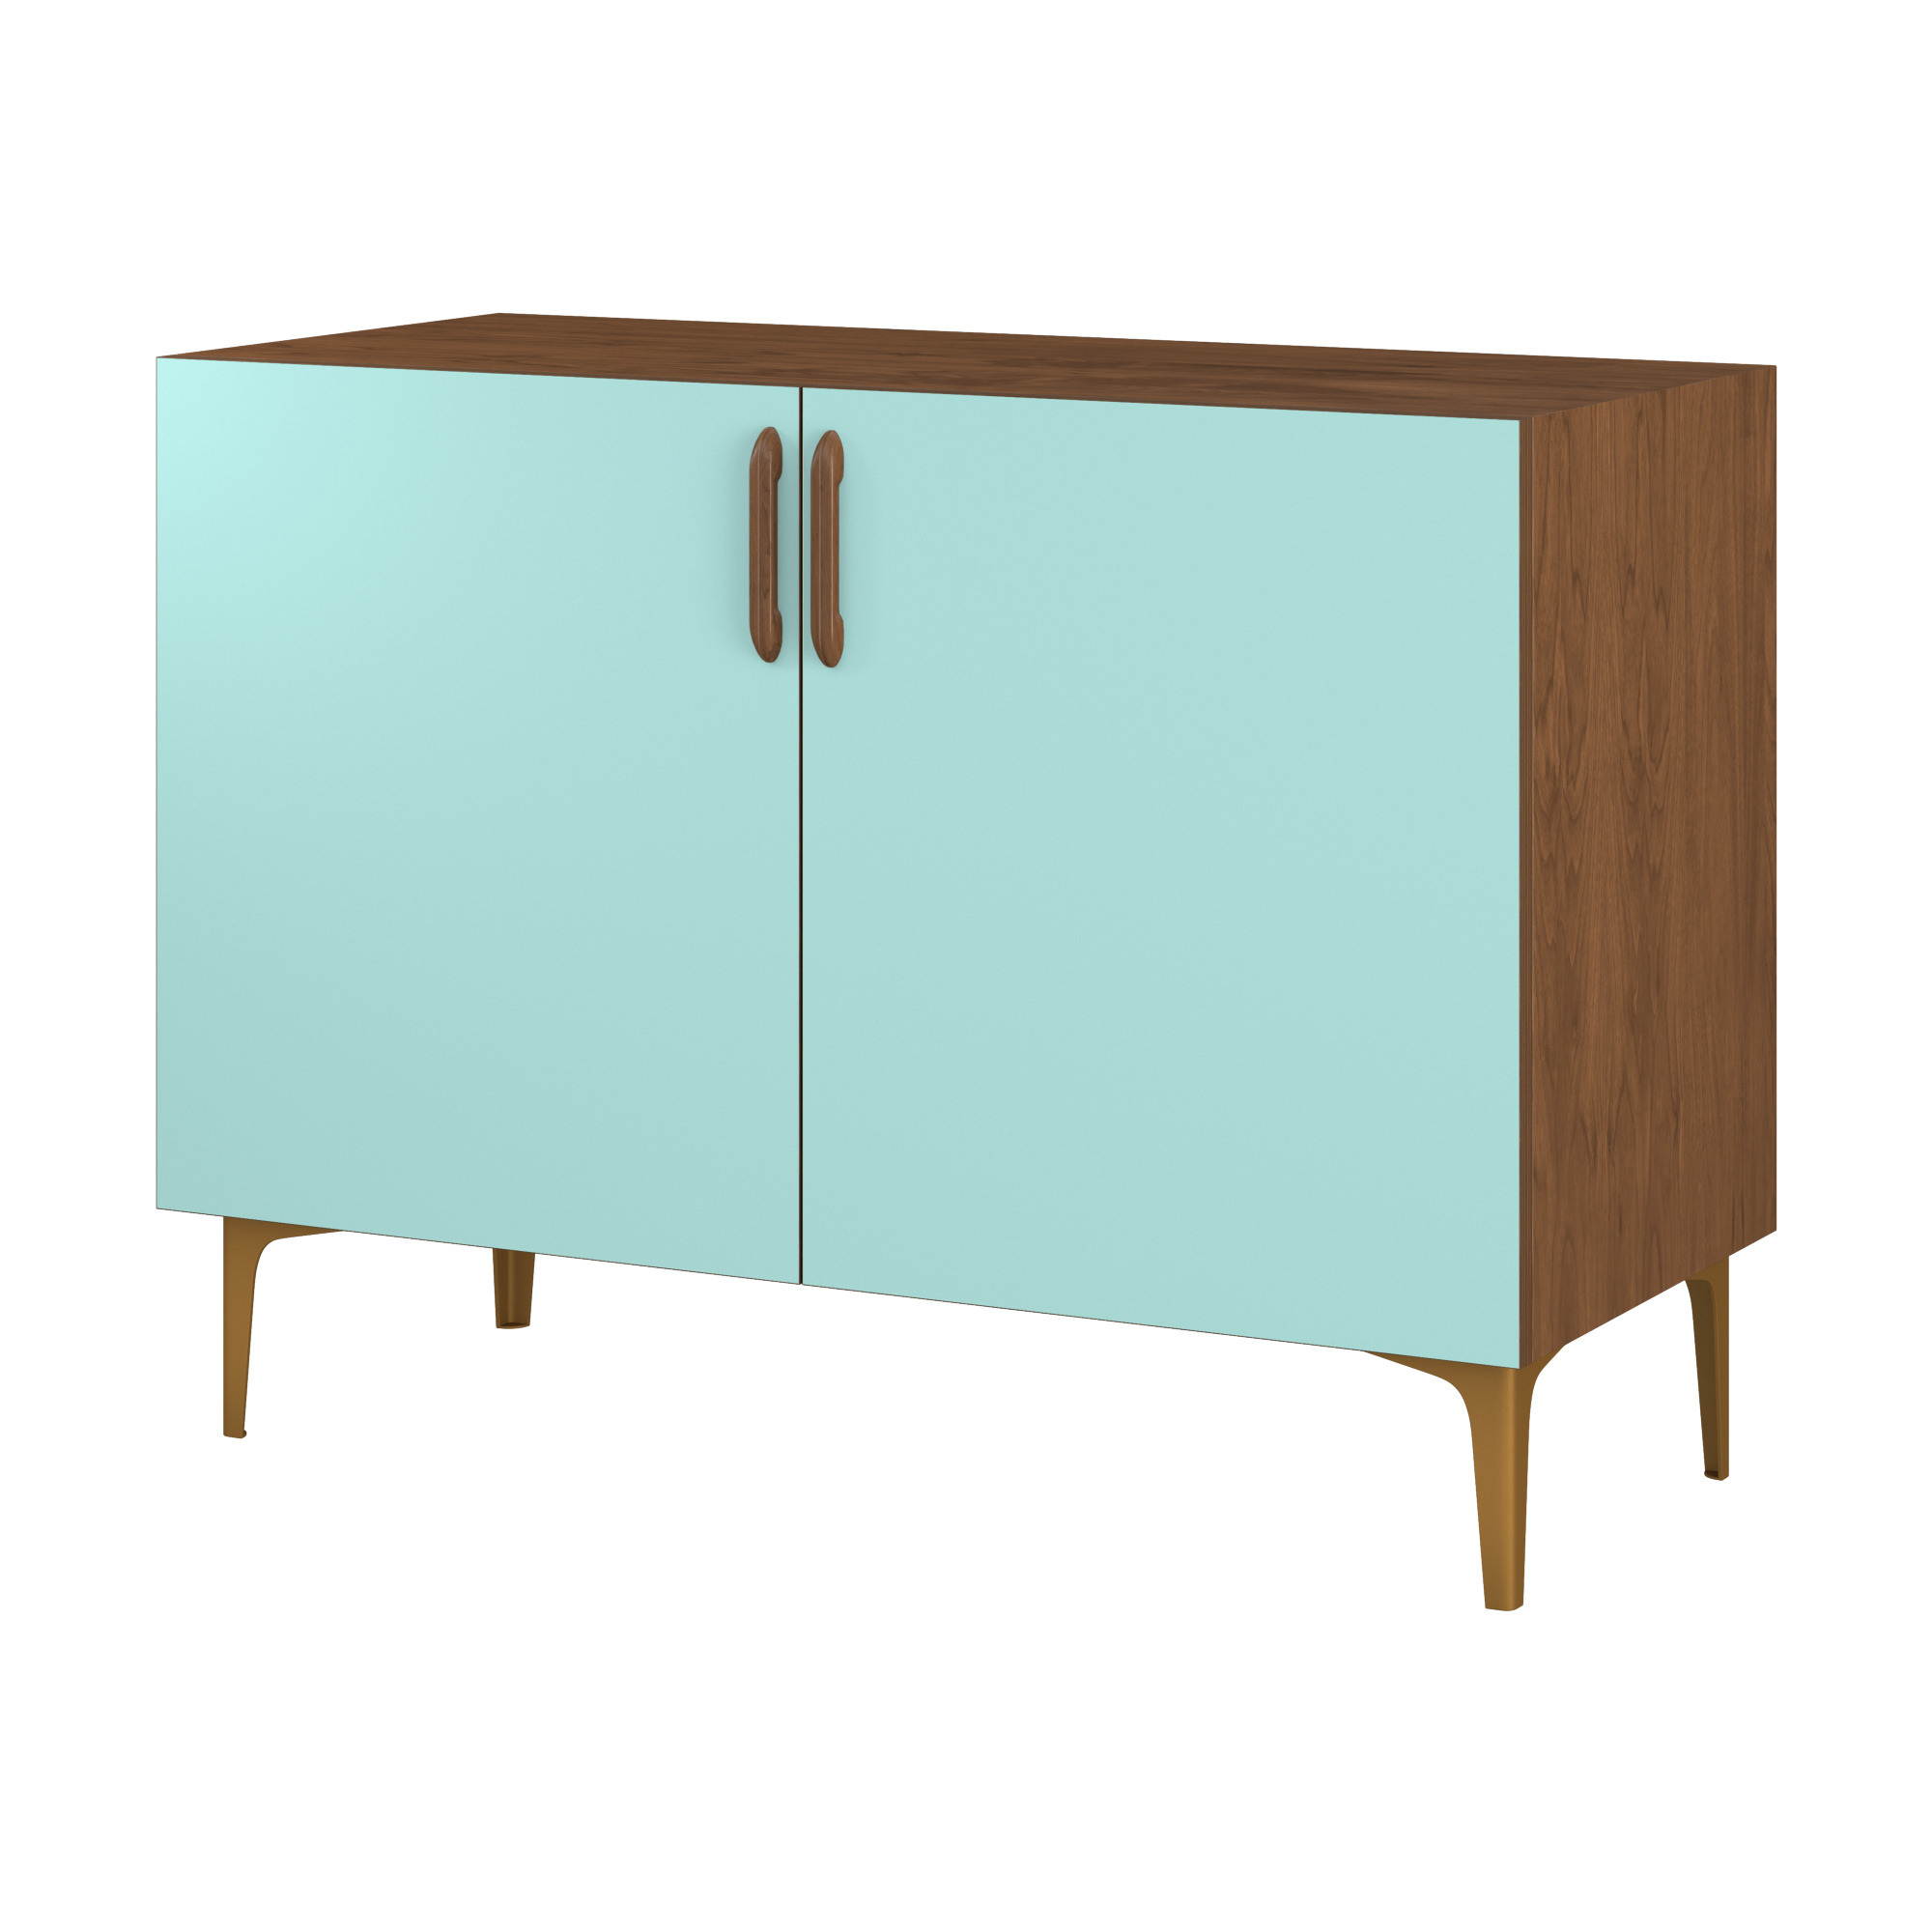 Customize Credenzas   Snugsquare Within Bright Angles Credenzas (View 8 of 20)